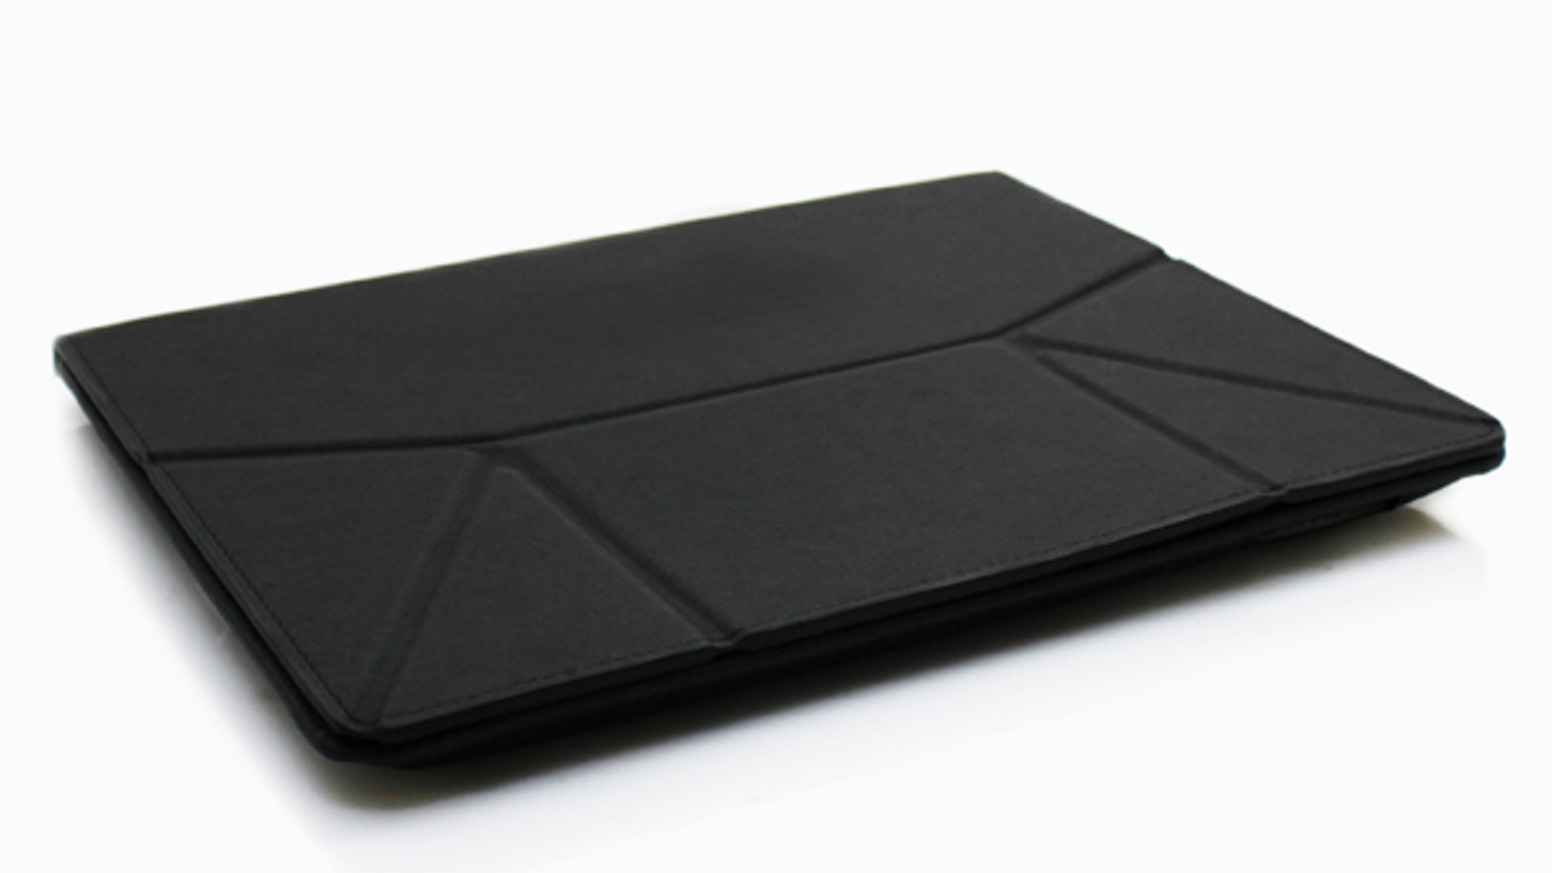 Slatestylus Origami Slate Case For The Ipad By Dwight Peters